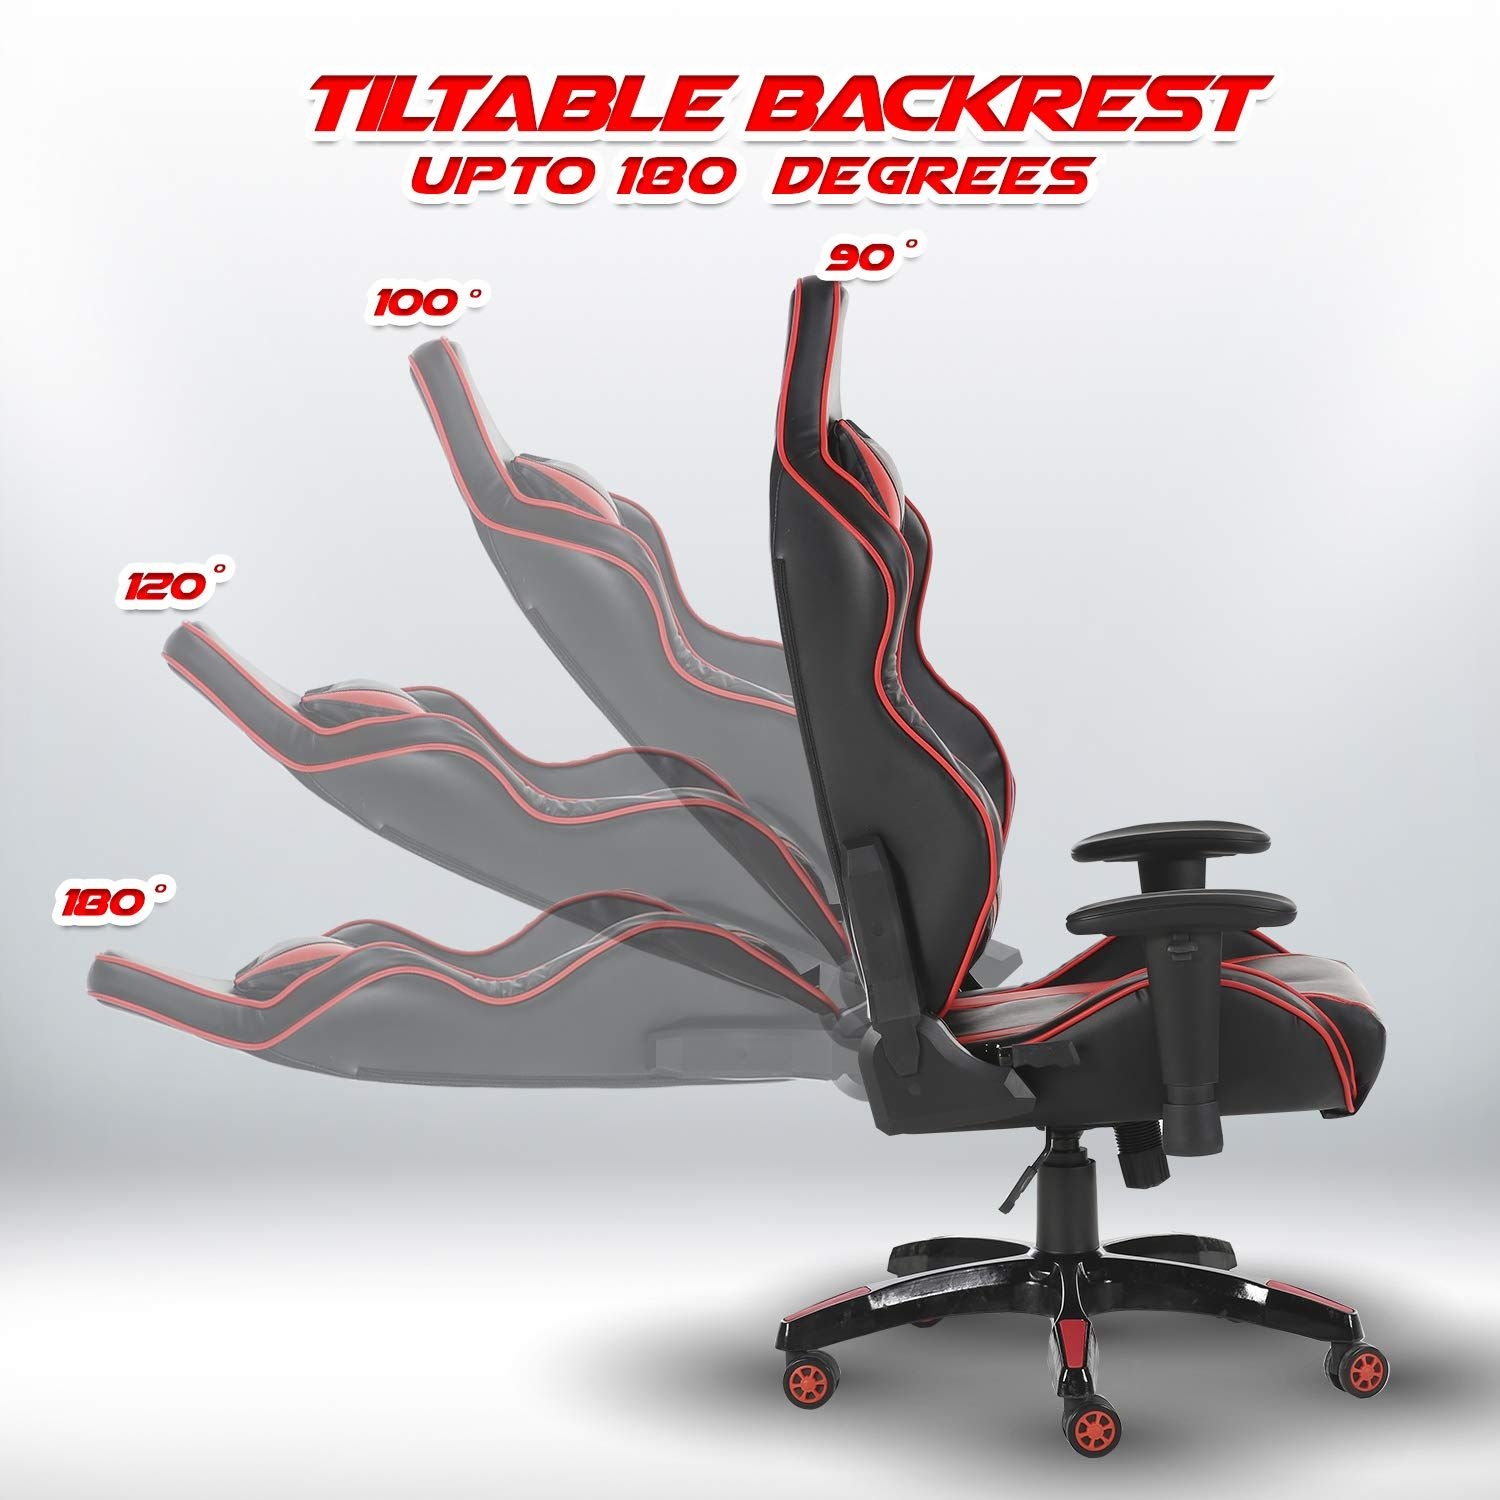 Get this top rated gaming chair so you can Fortnite in